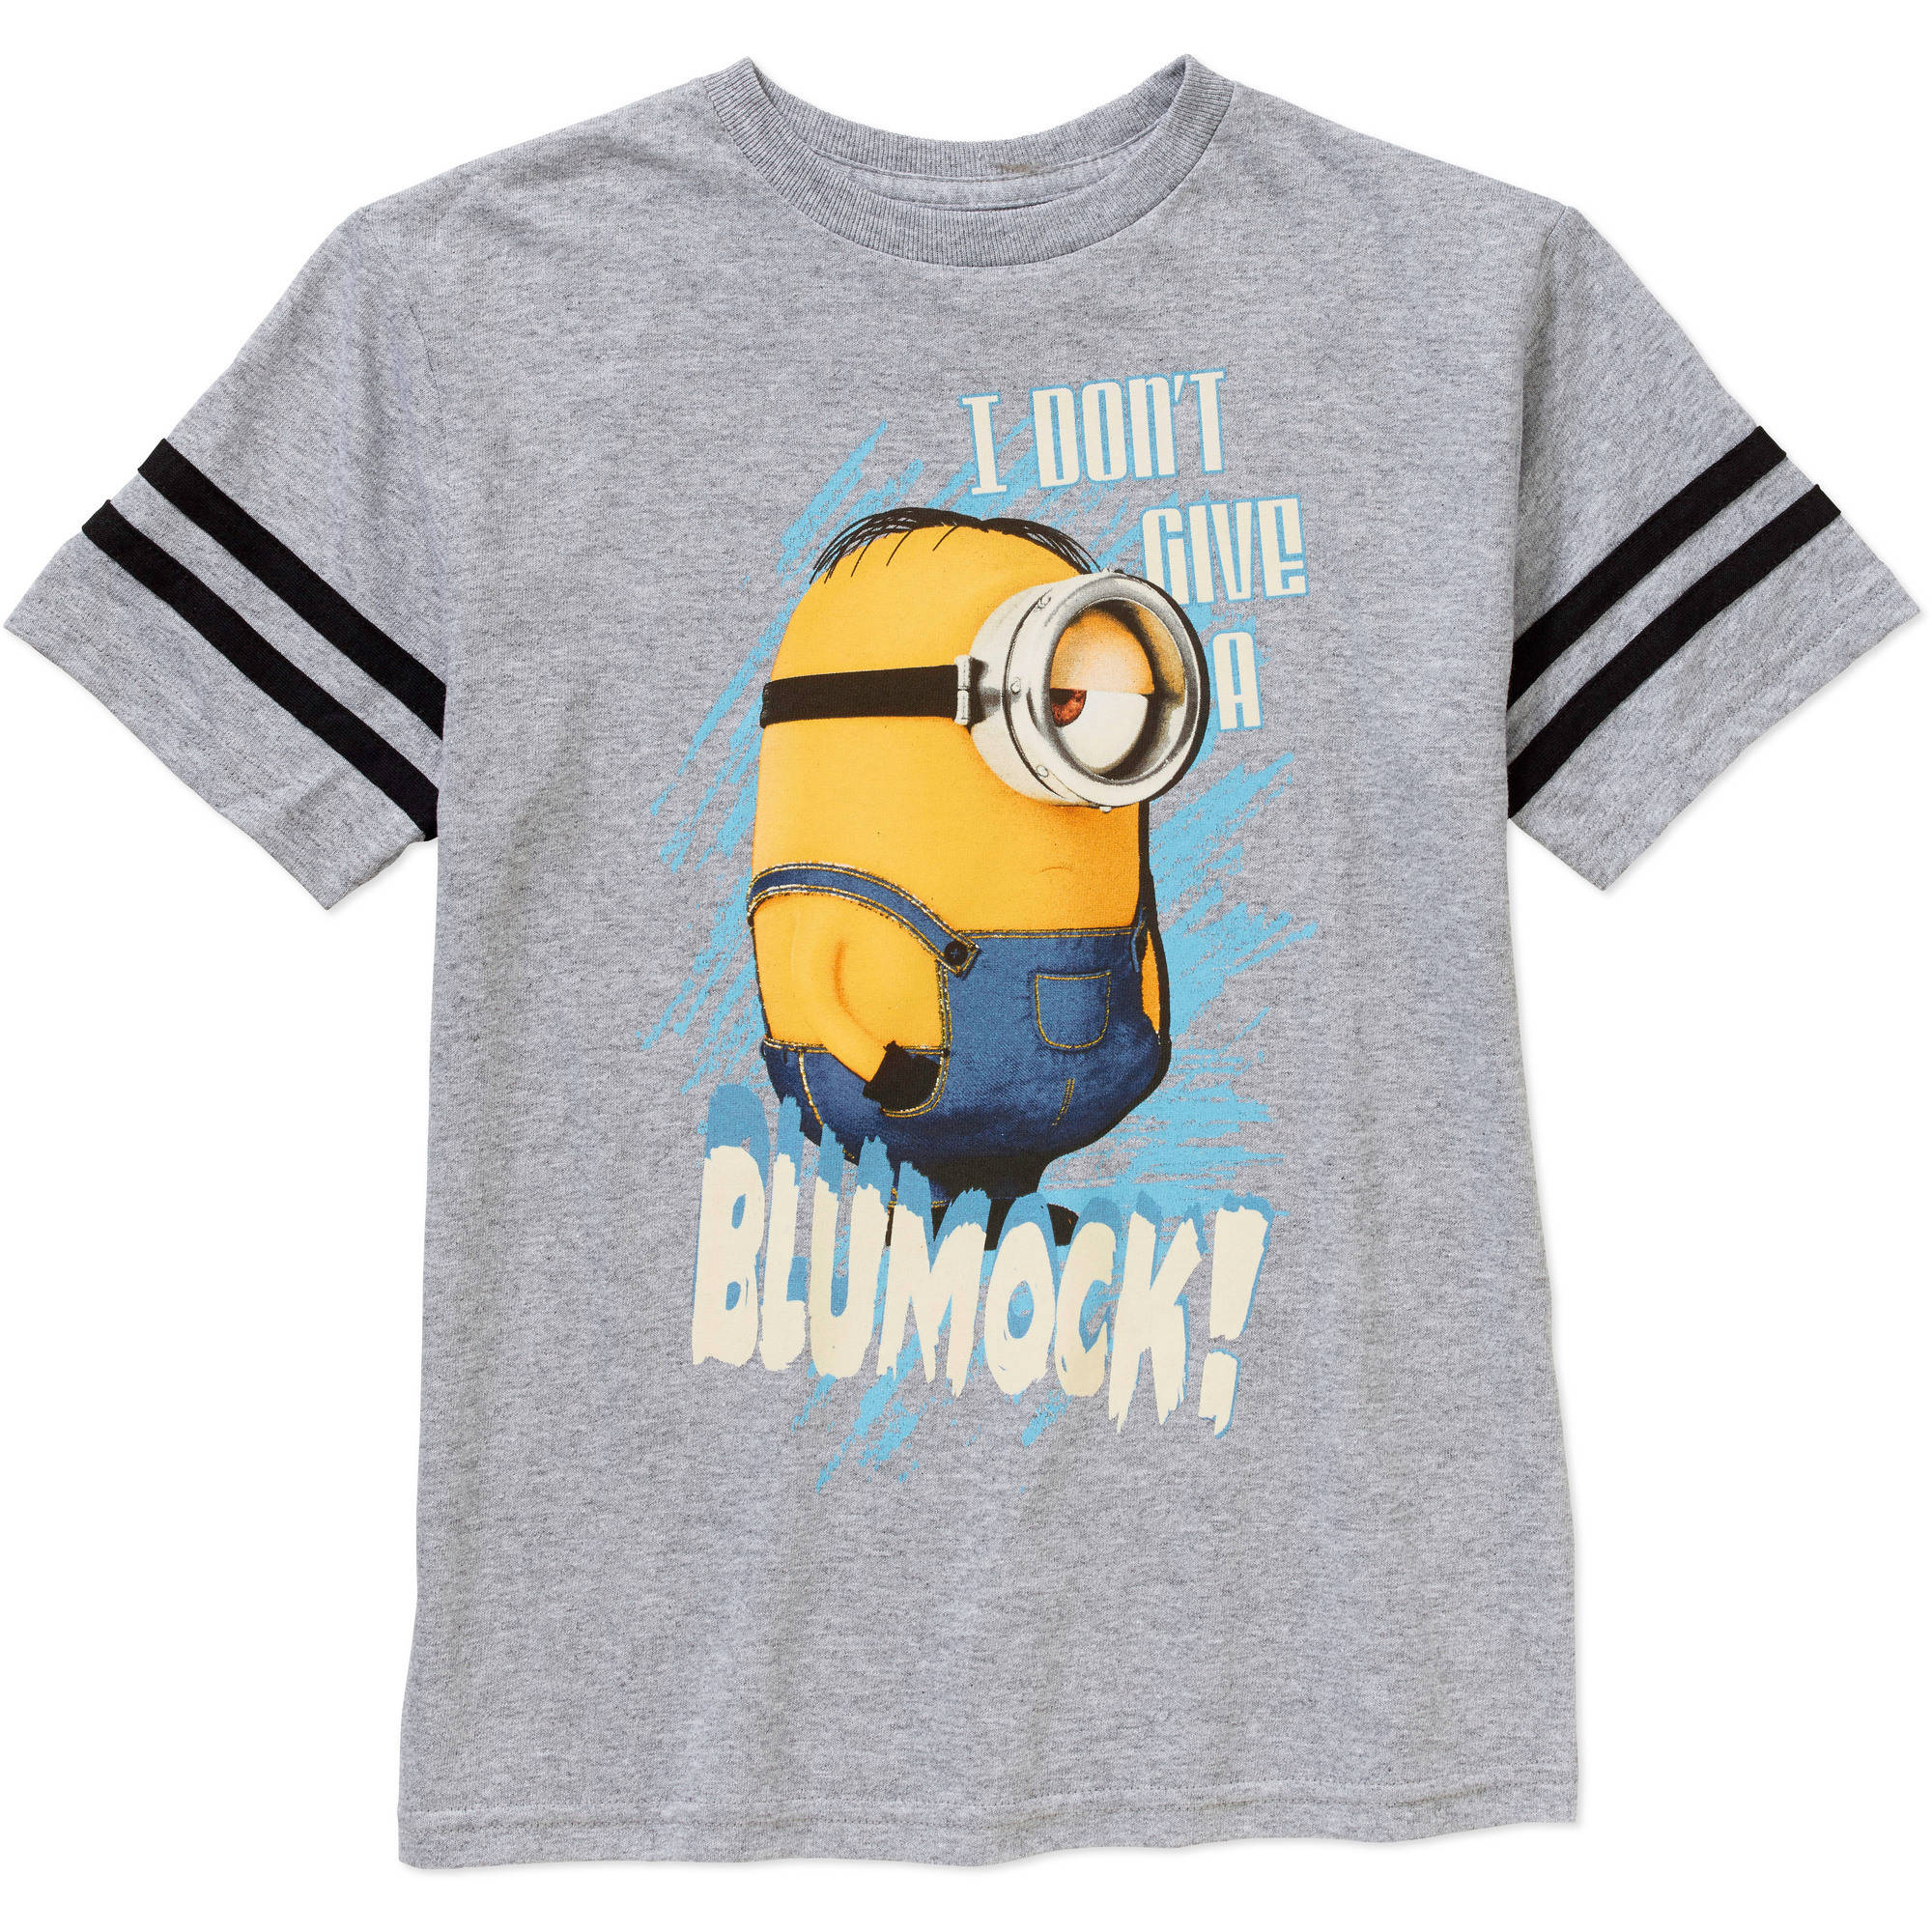 Minions Don't Give A Boys Graphic Tee